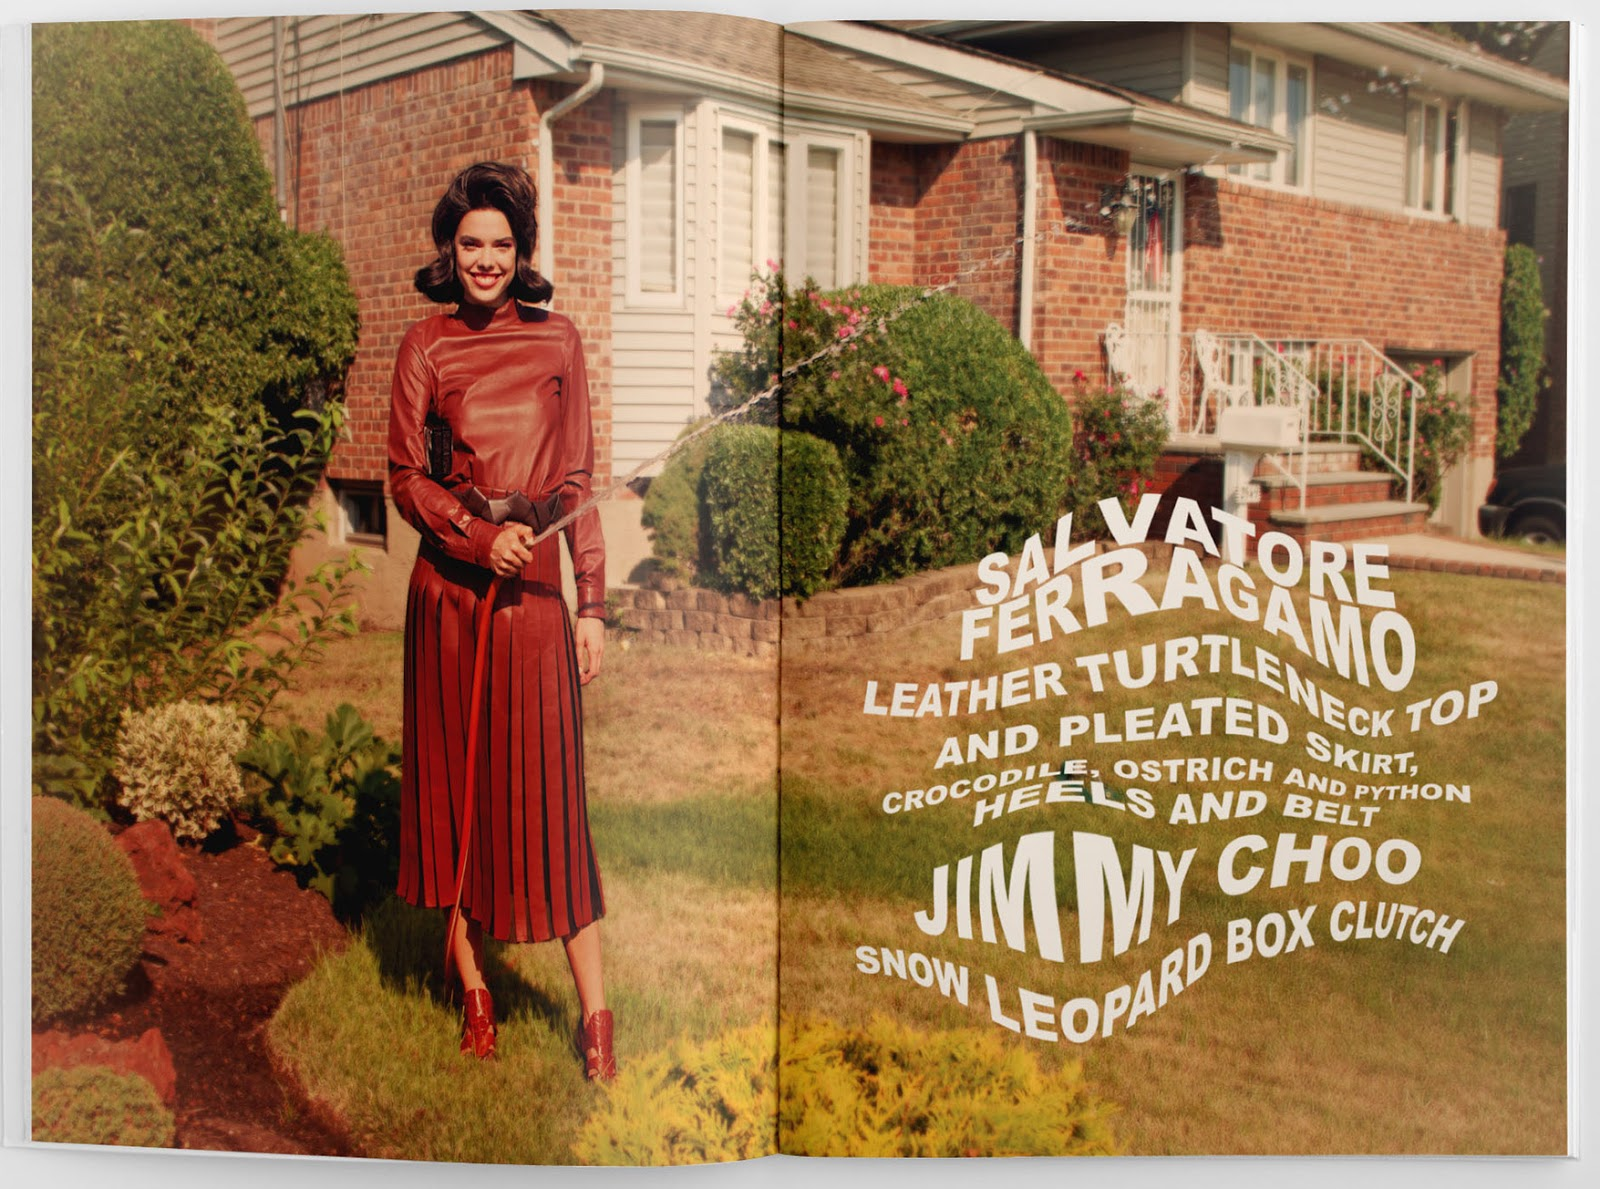 Magazine layout showing good use of typography, woman standing in yard with hose